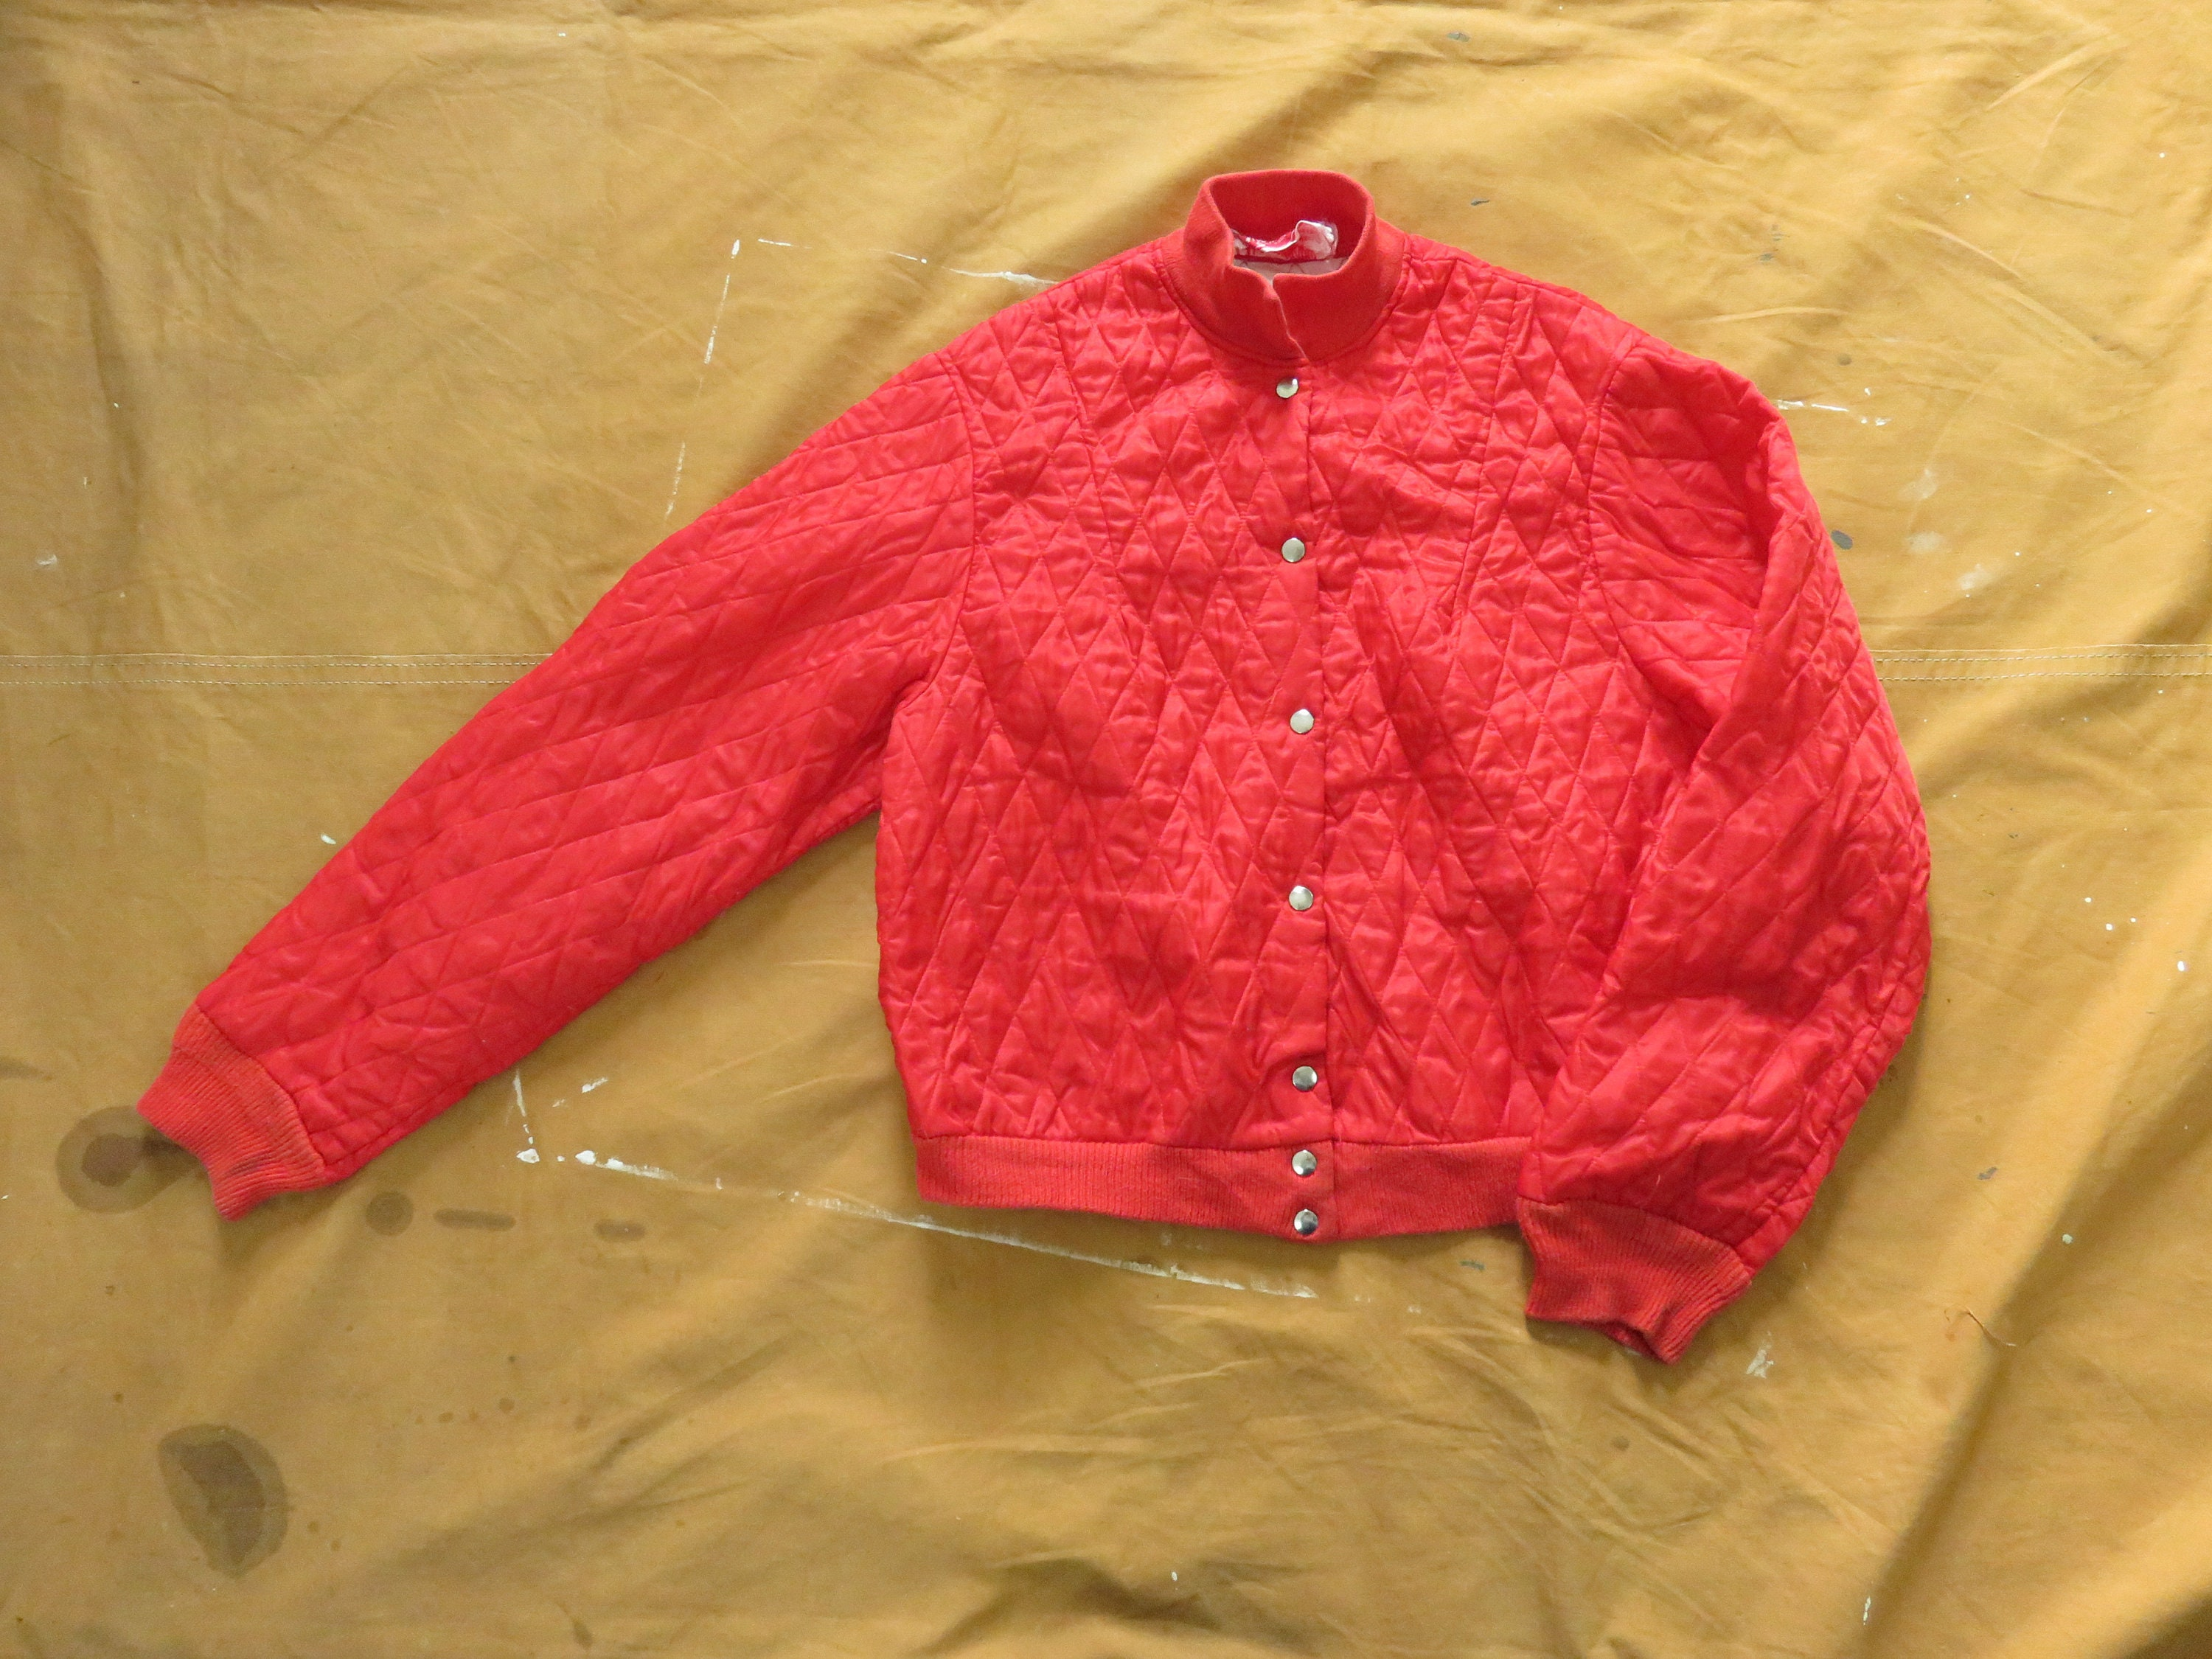 1950s Mens Hats | 50s Vintage Men's Hats Small 50S Red Quilted Liner JacketThermal, 1950S 1960S 60S, Baffled, Insulated Coat $0.00 AT vintagedancer.com